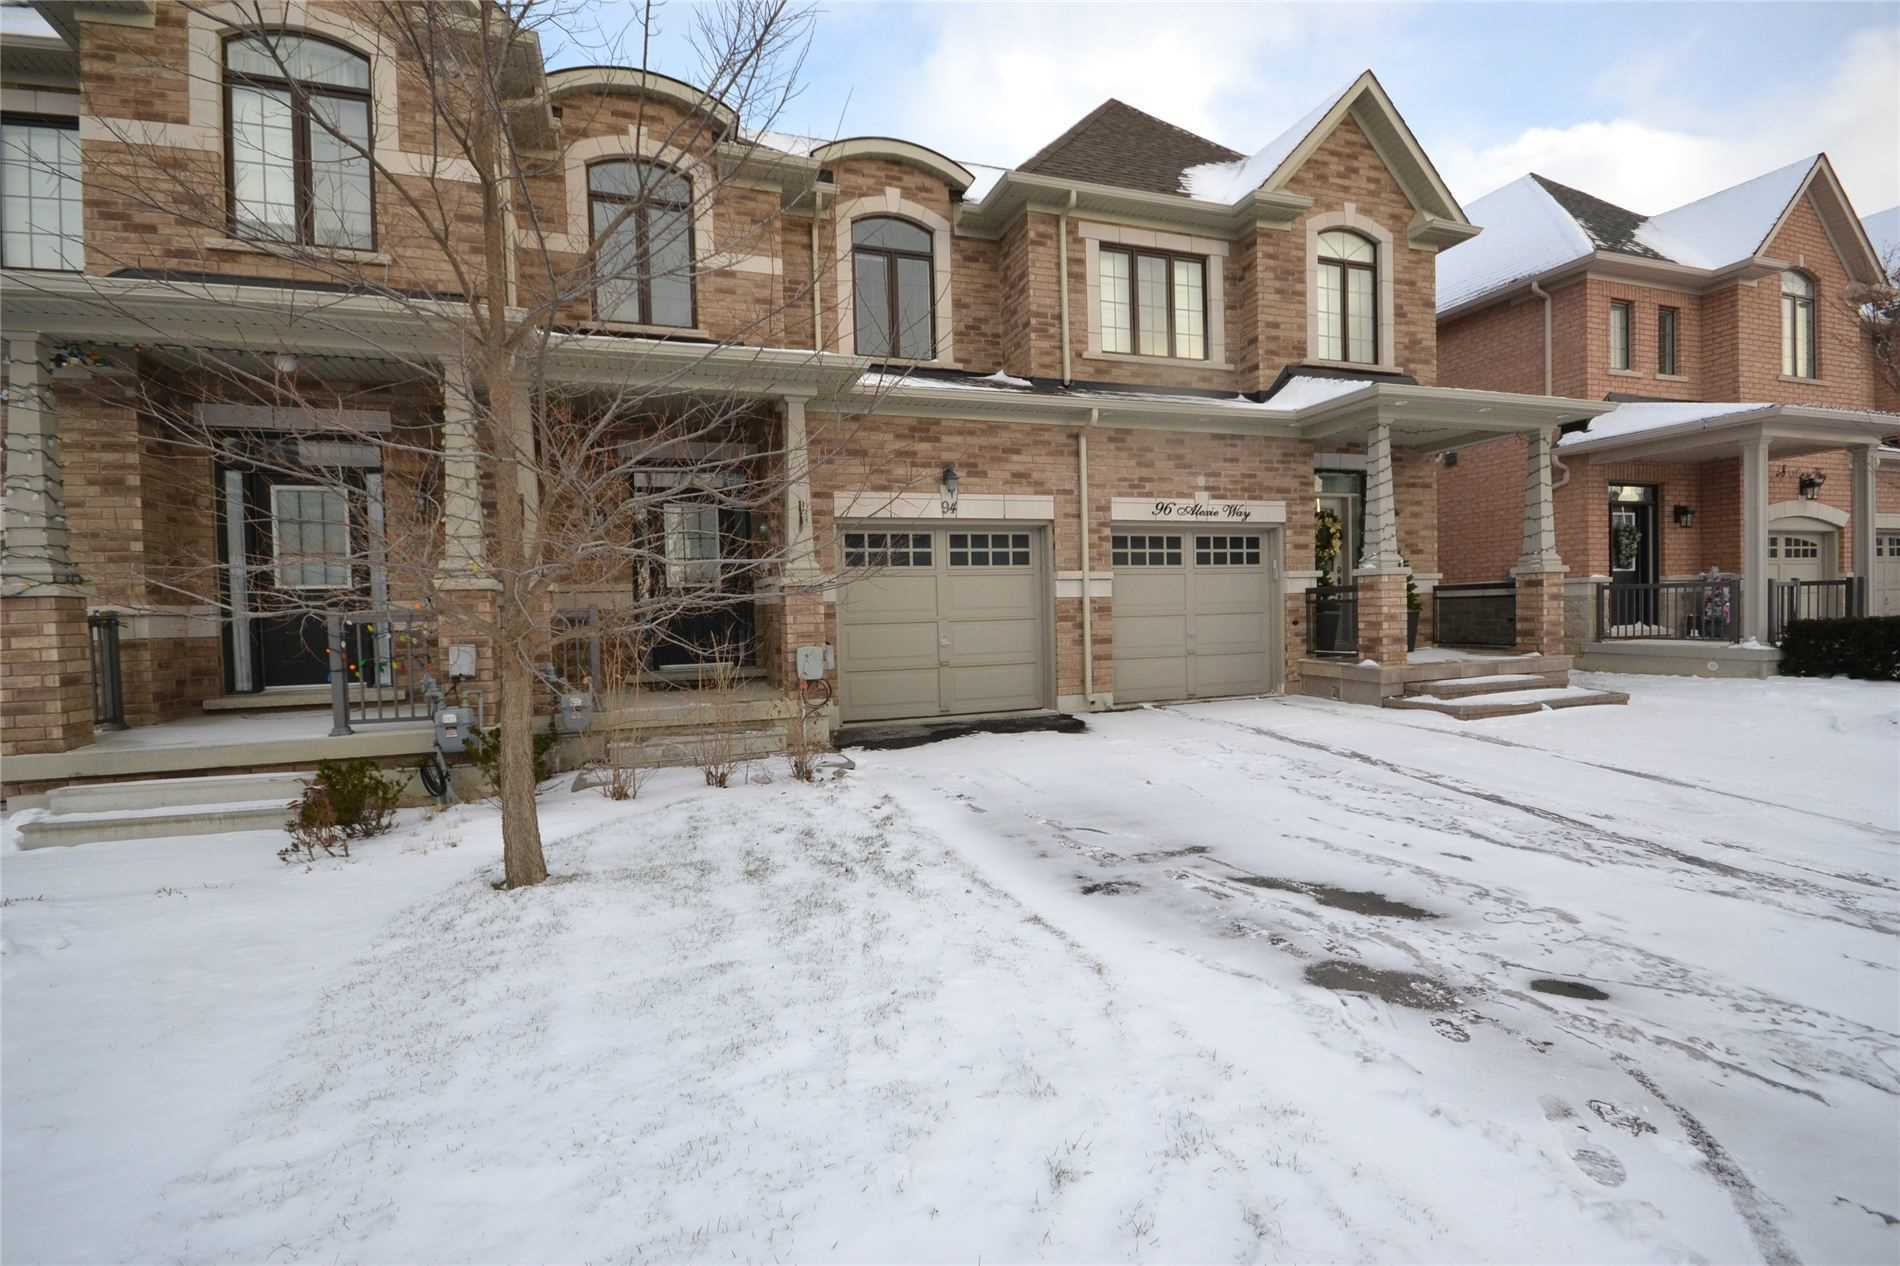 Main Photo: Alexie Way in Vaughan: Vellore Village House Steven & Marie Commisso Vaughan Real Estate Vaughan Condos